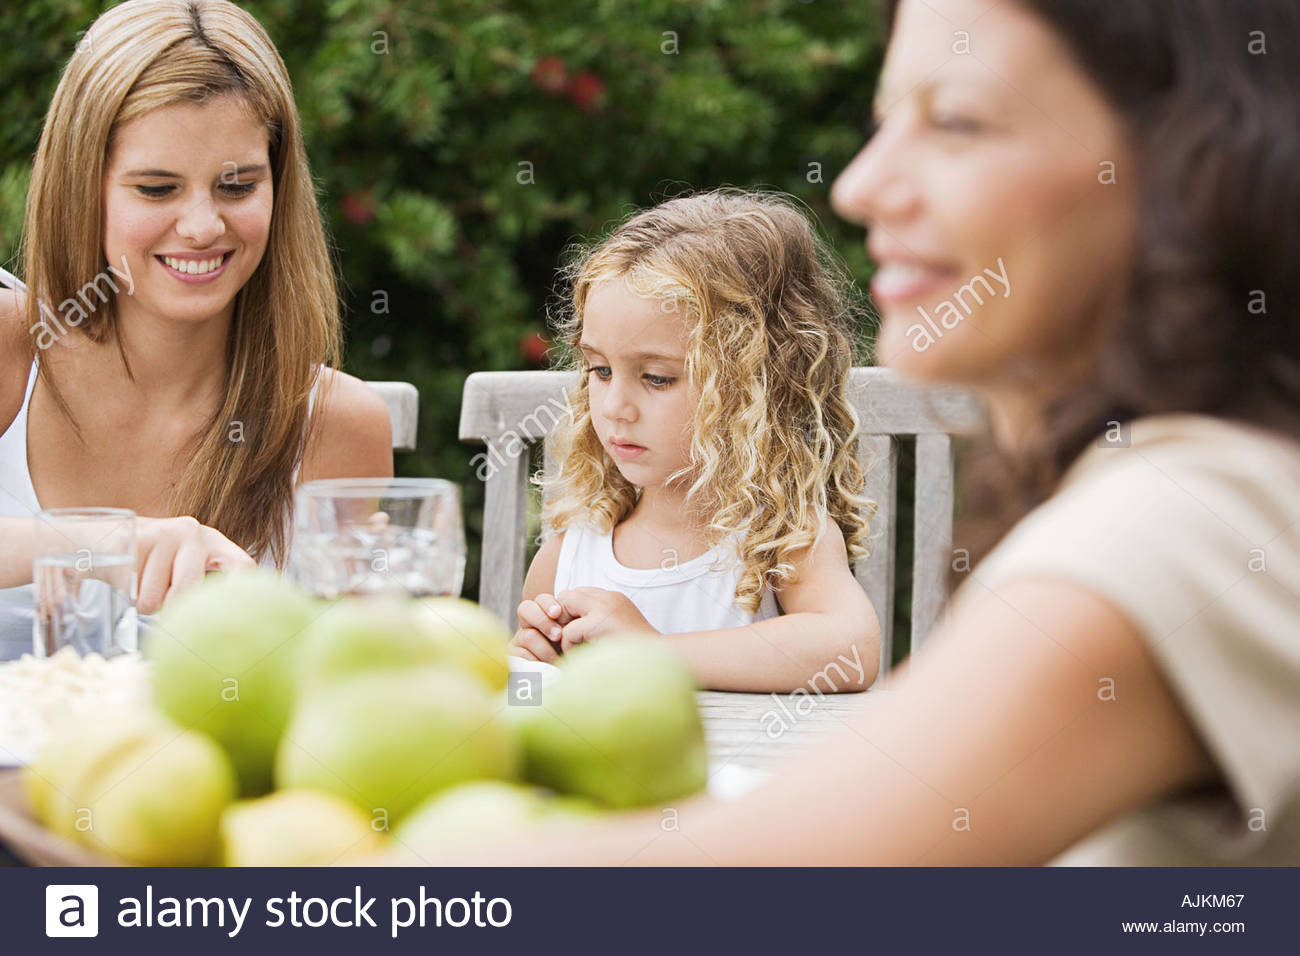 Girl at a table in the garden - Stock Image